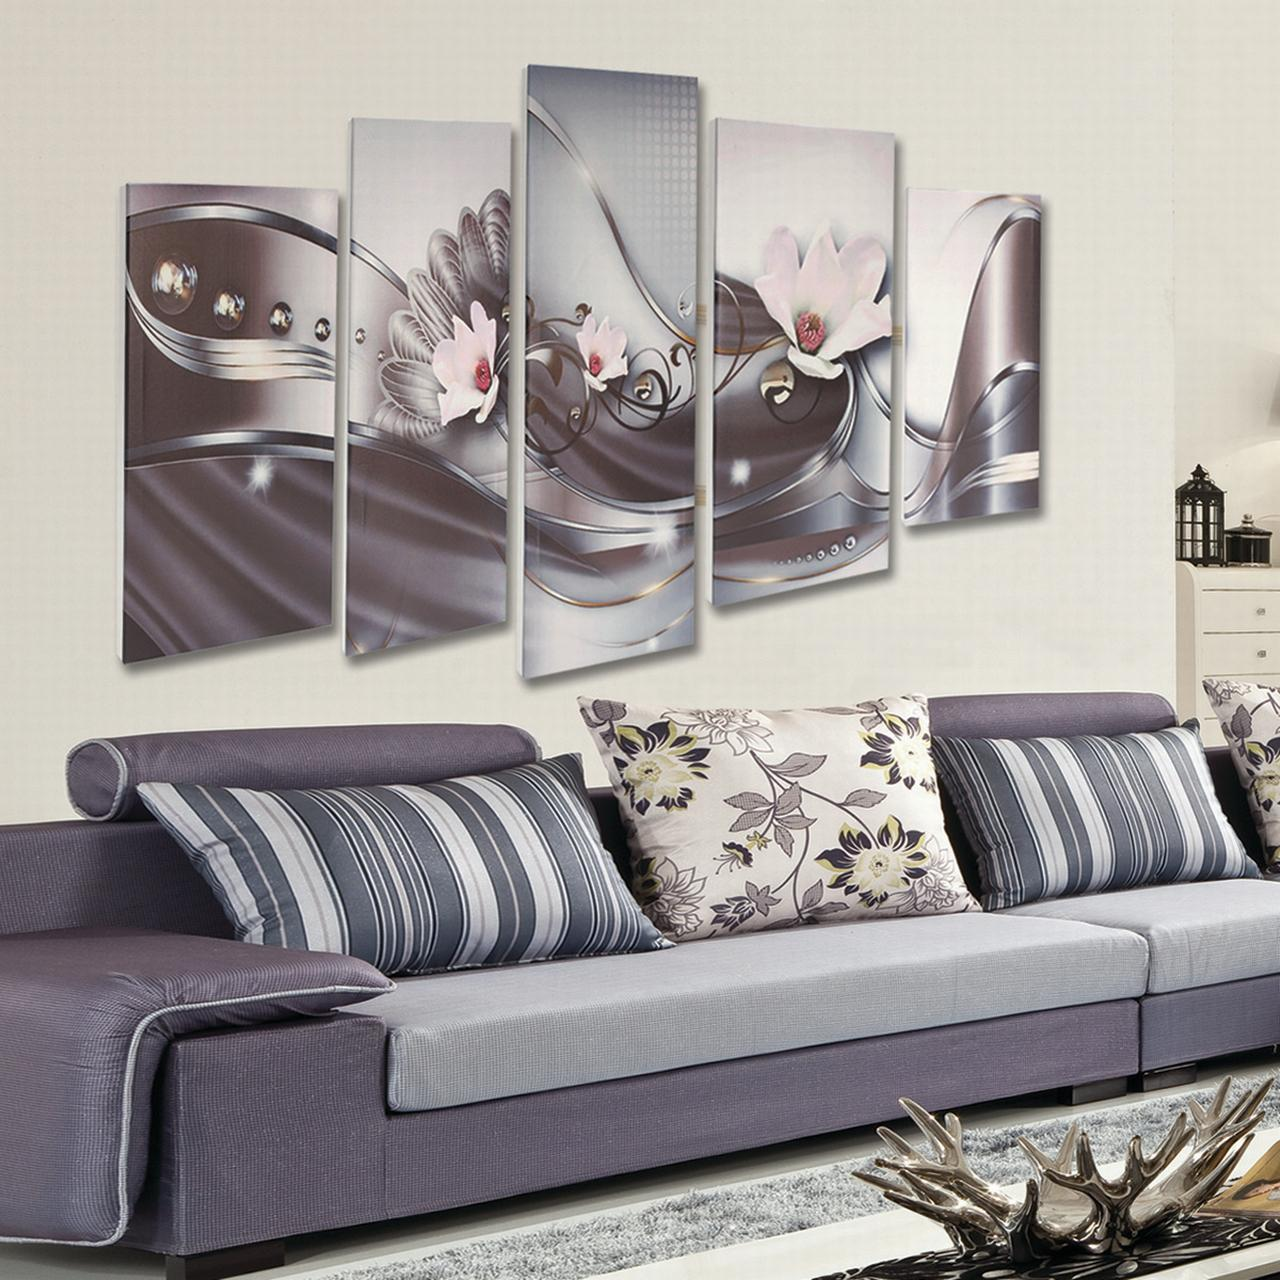 5 Panel Canvas Print Modern Picture Wall Artwork Decor Home Abstract Flower Framed by